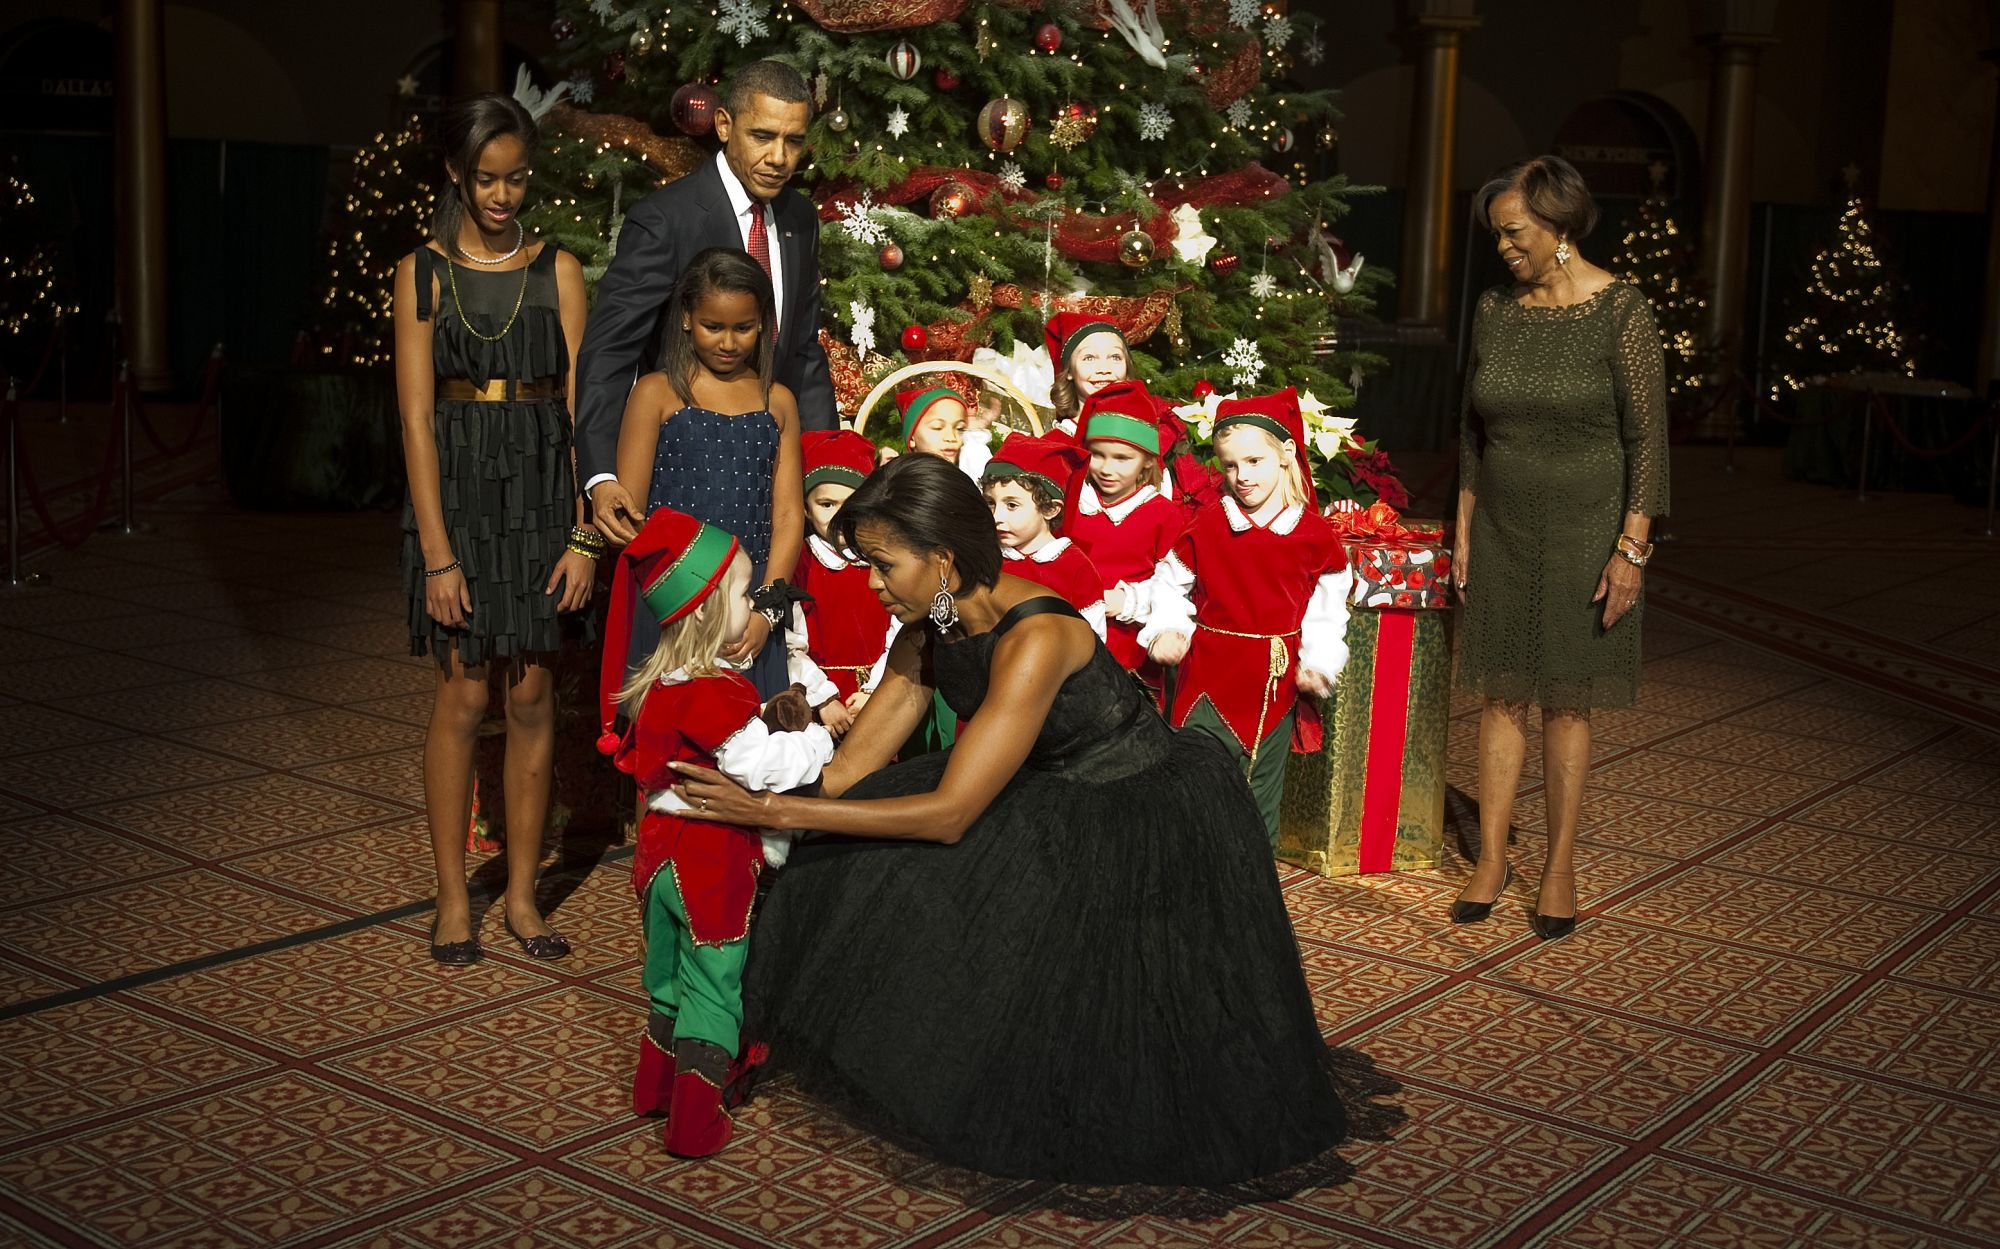 First Lady Michelle Obama (C) picks up Meghan Maurano as US President Barack Obama (3rd L) poses with children dressed as Santa's elves, his mohter-in-law Marian Robinson (R) and his two daughters Malia (L) and Sasha (2nd L) watch during a reception for Christmas in Washington, a charitable fundraiser and musical celebration of the holidays, at the National Building Museum in Washington, DC, December 12, 2010. AFP PHOTO/Jim WATSON (Photo credit should read JIM WATSON/AFP via Getty Images)